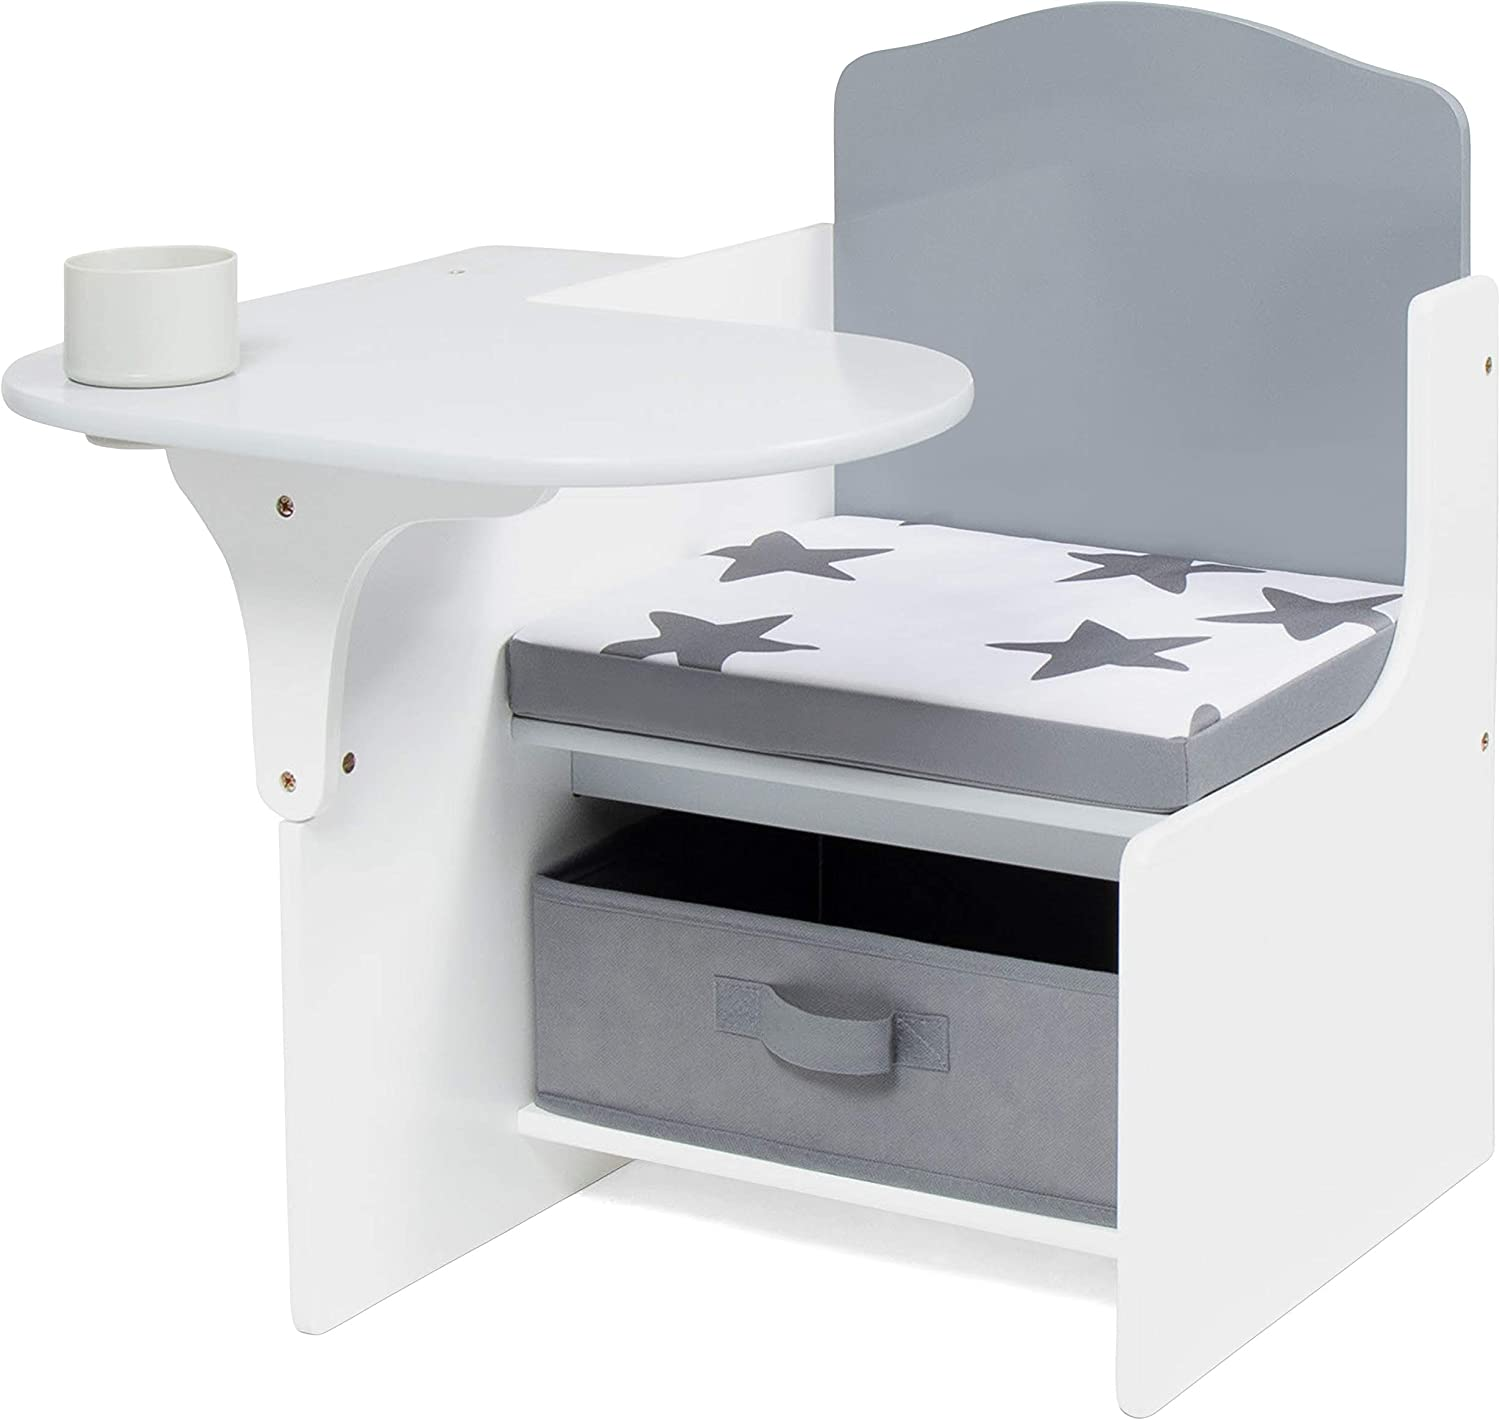 Milliard Chair Desk with Storage Bin for Kids, Children Activity Playset Furniture with Modern Grey Colors